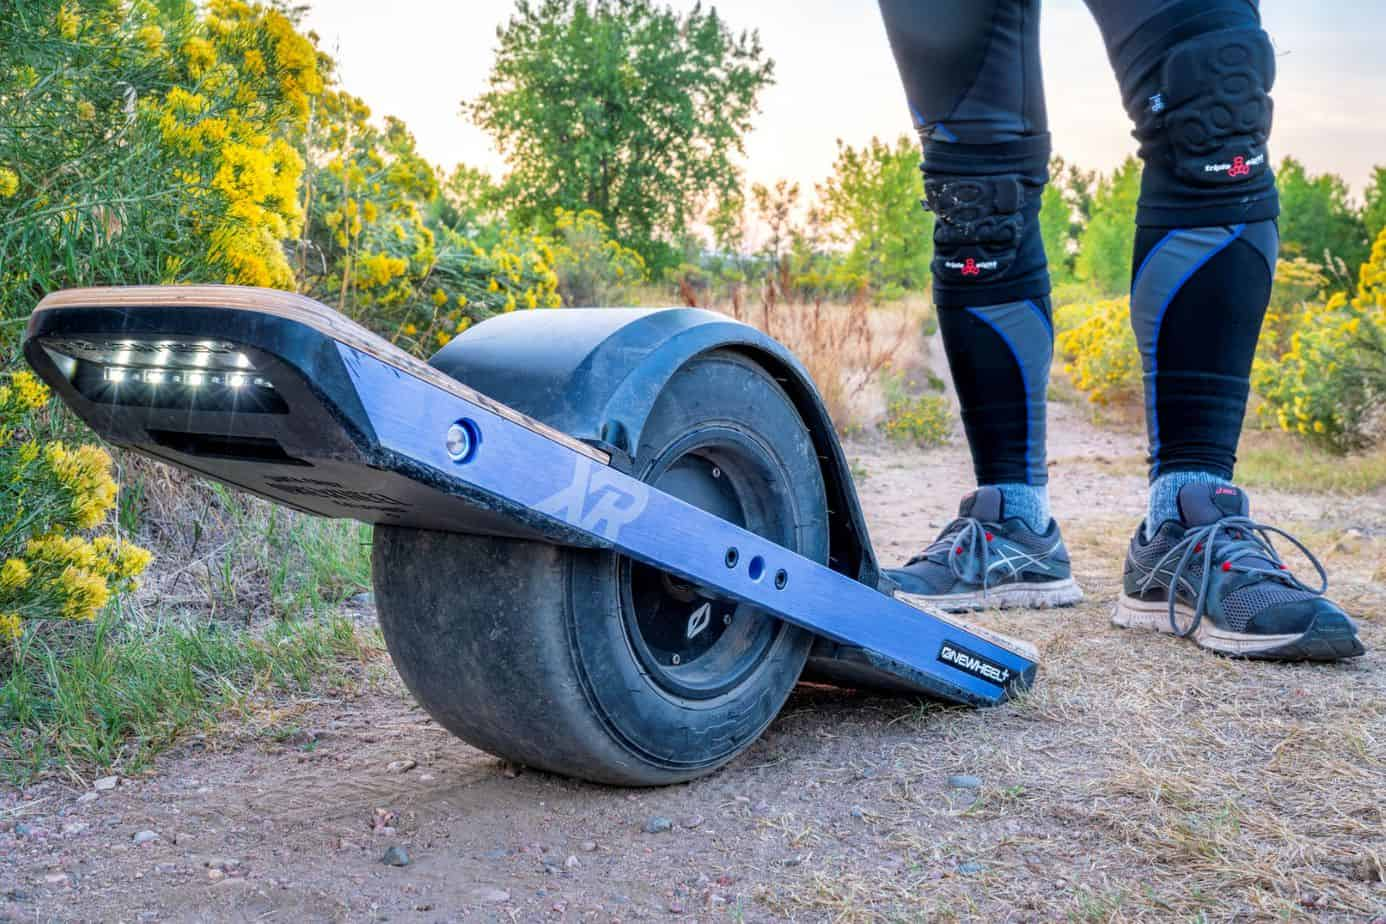 Why is the OneWheel so expensive?